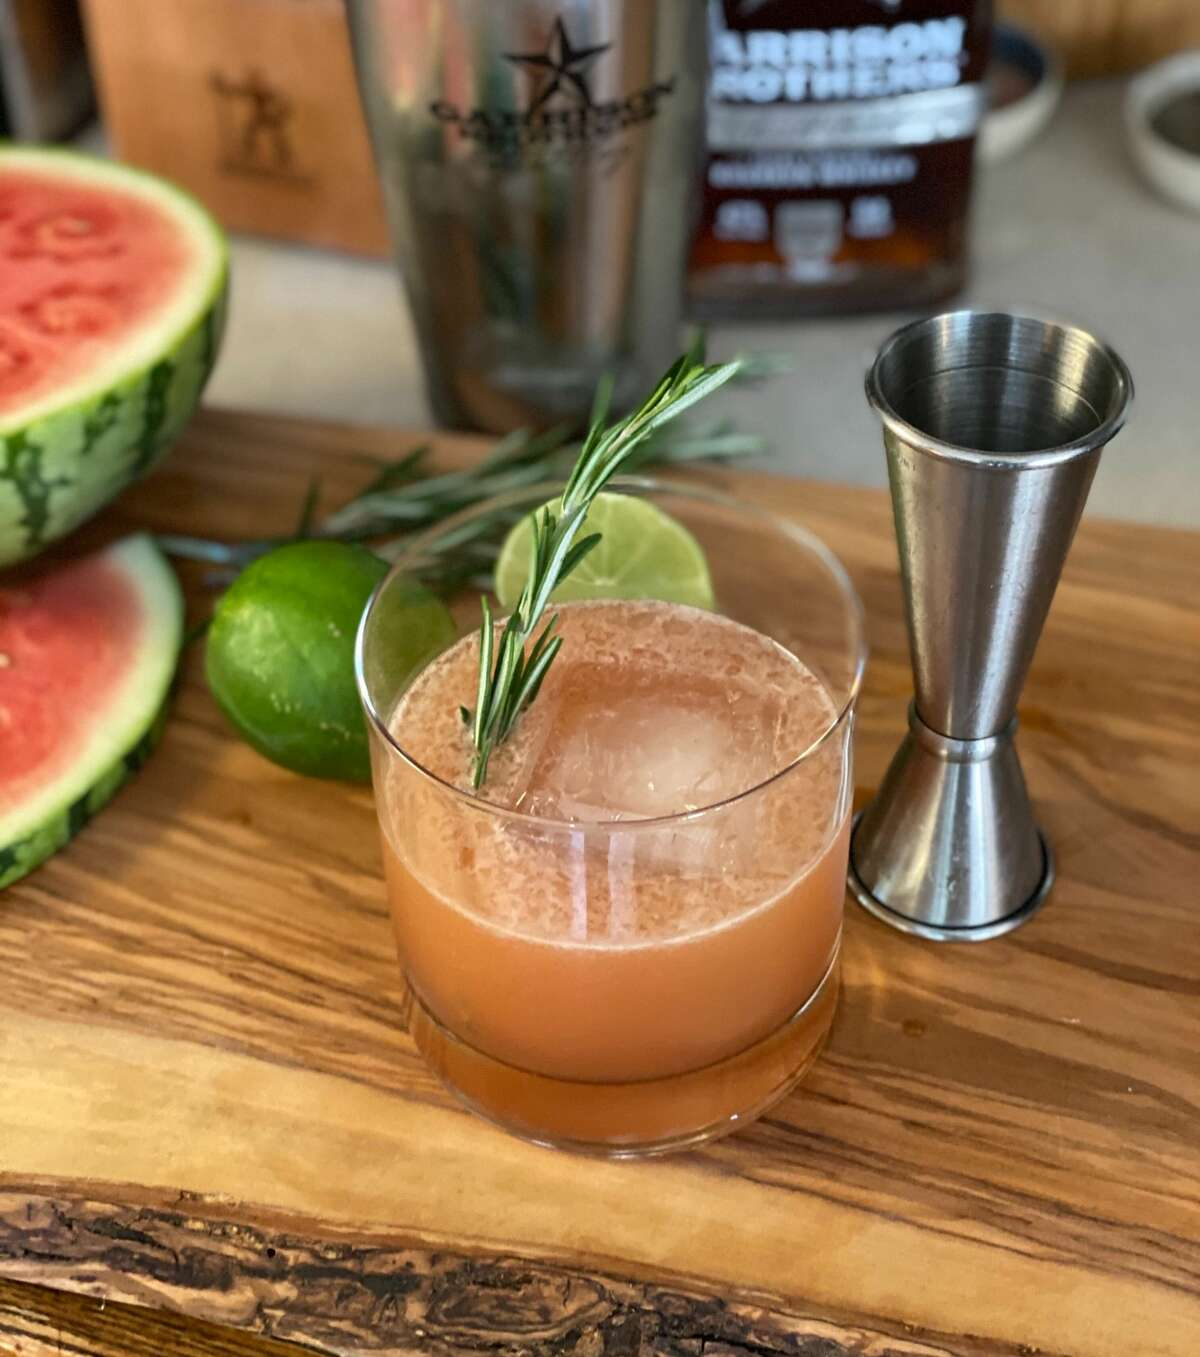 Five San Antonio bartenders created The Alamo City, a drink  for the 2020 Bourbon Brawl that will feature notes of fruit and rosemary.